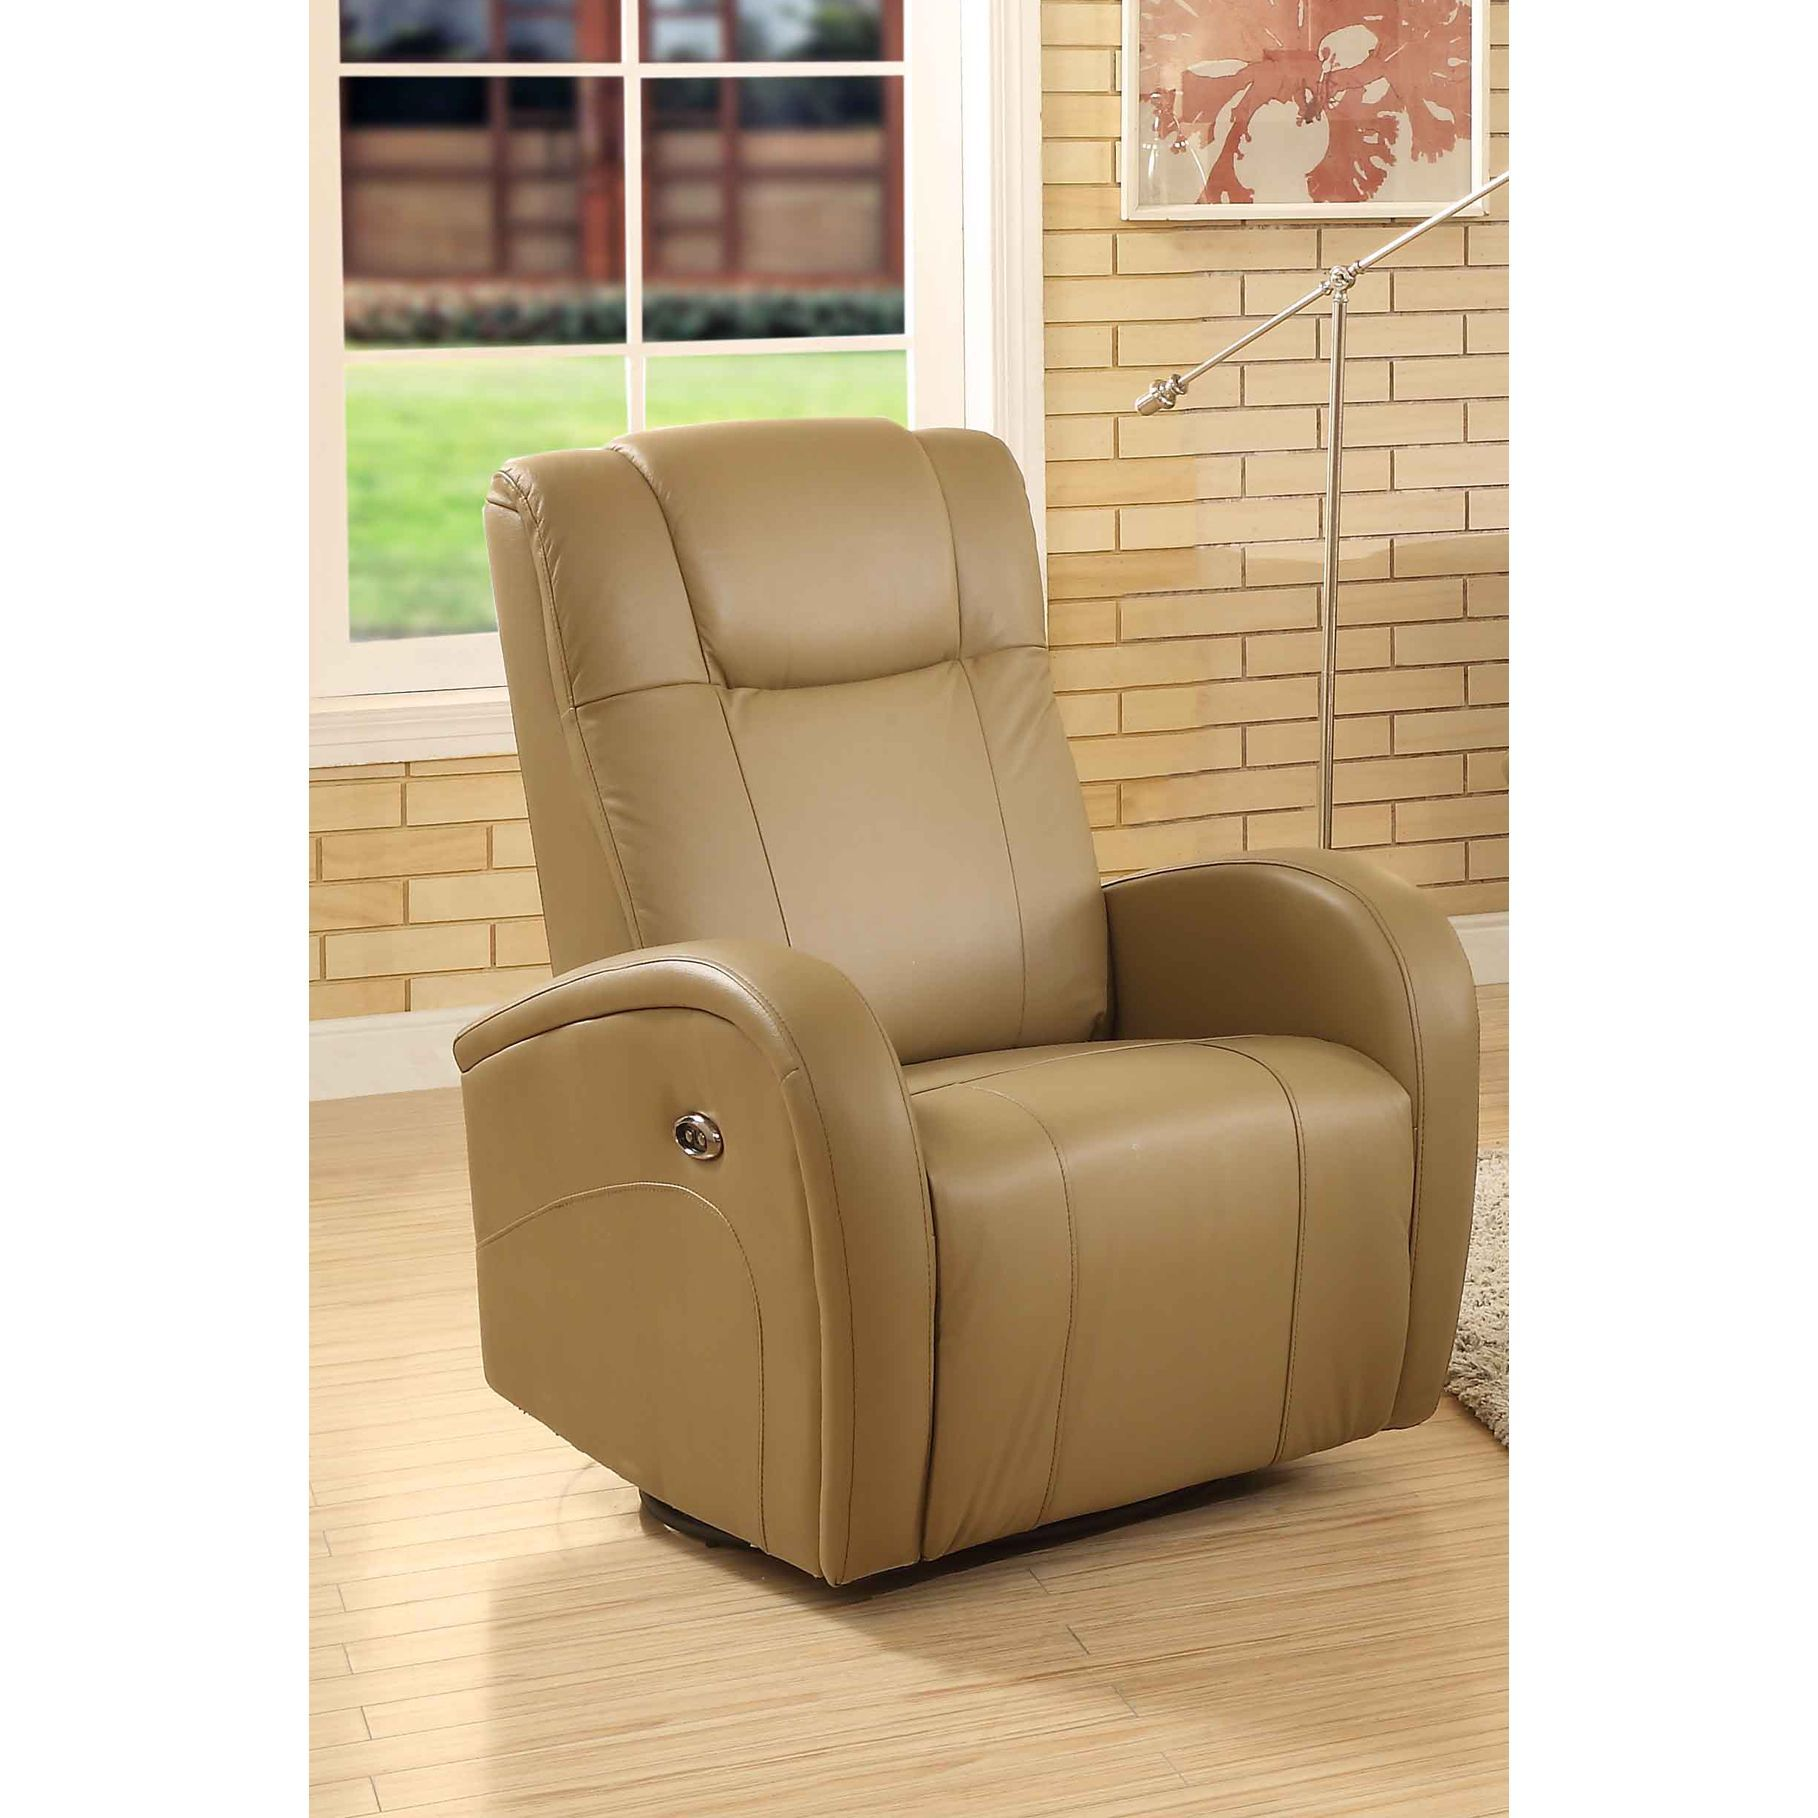 replaced i review worn inexpensive a for recliners with fetchmobile promising rocker adults this co short out recliner adult